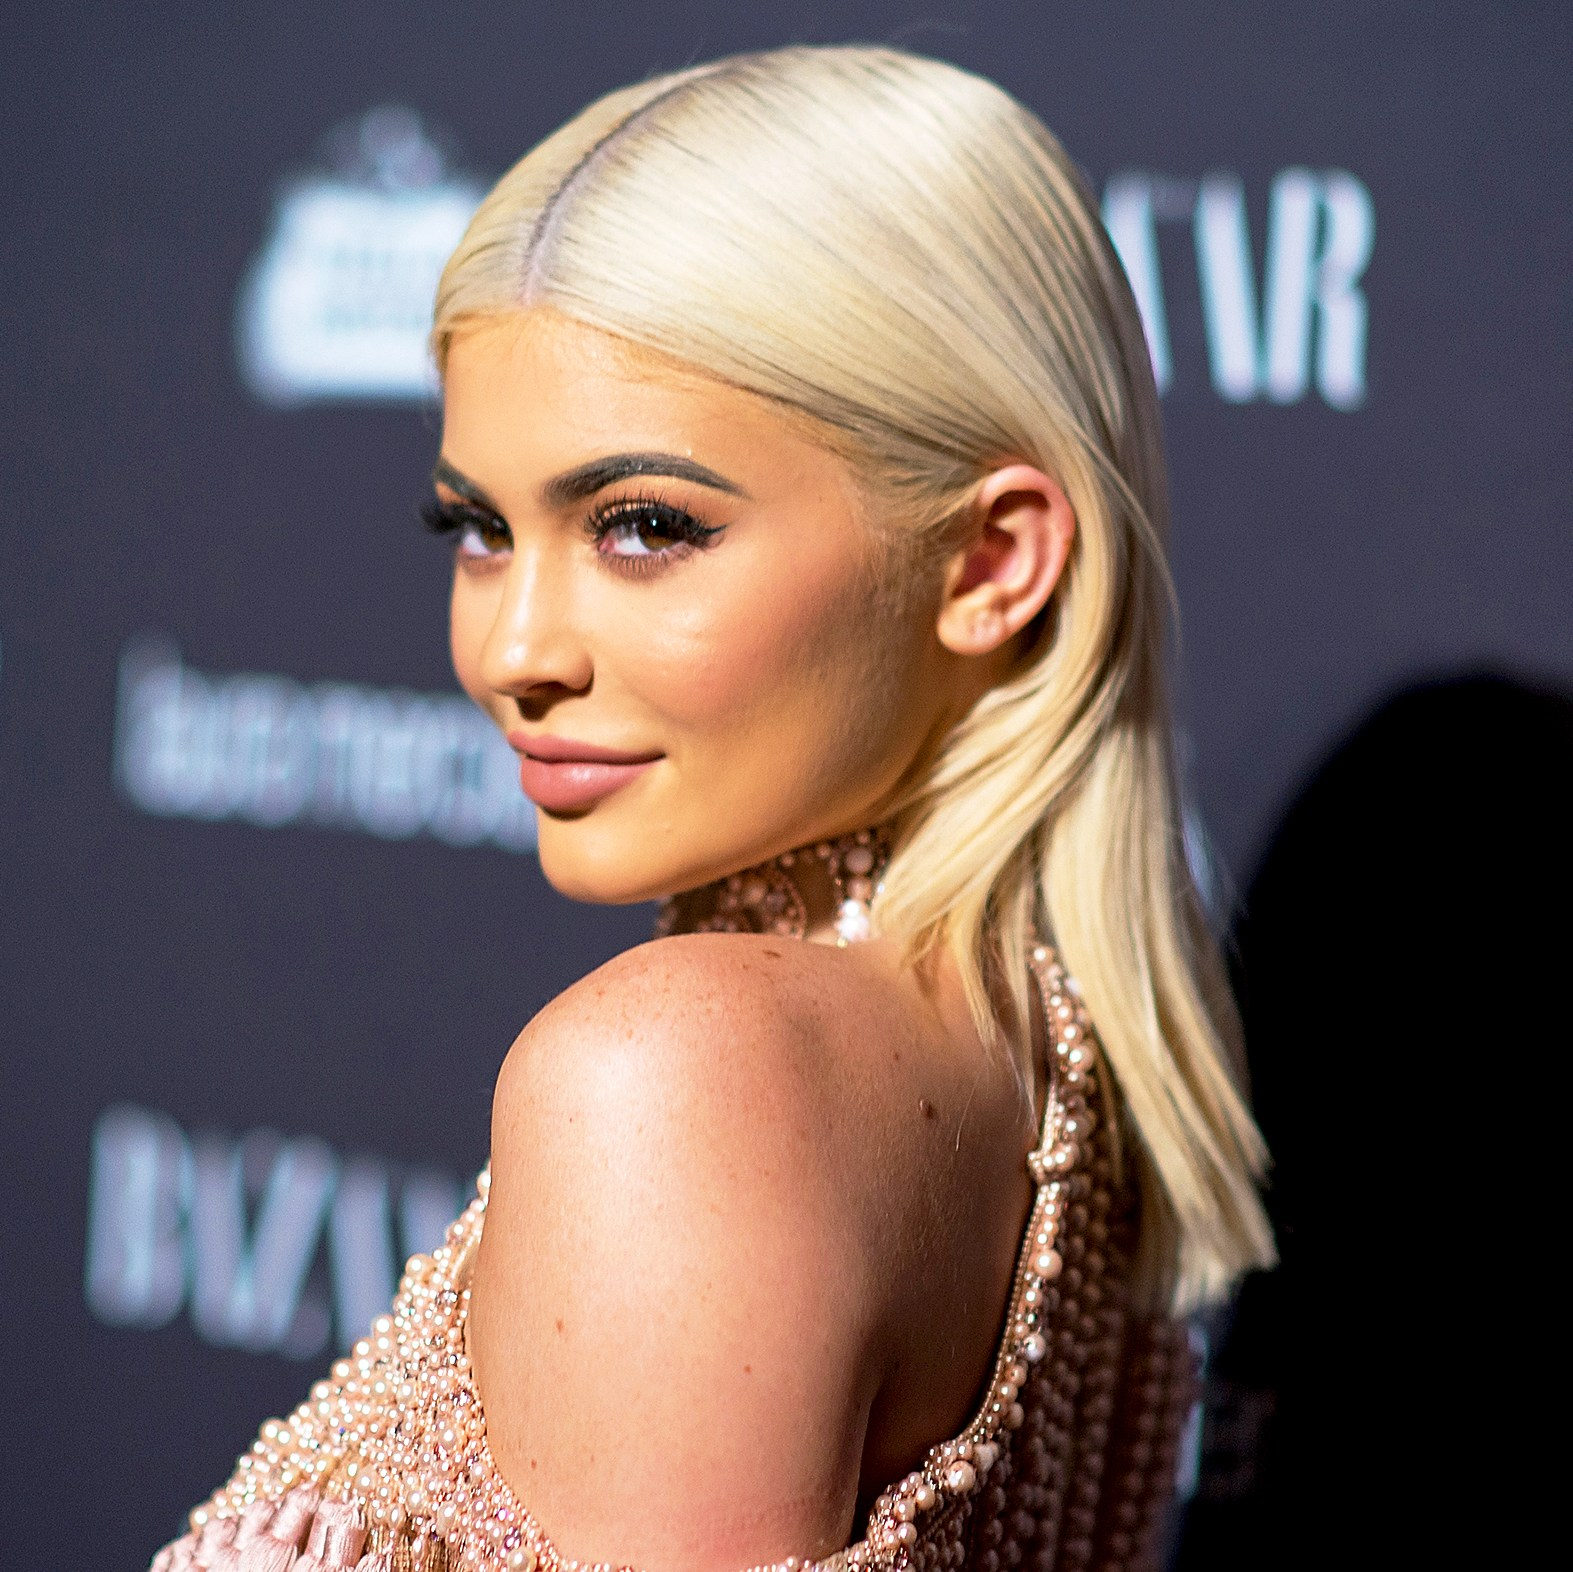 Kylie Jenner attends 'Harper's Bazaar' Celebrates 'ICONS by Carine Roitfeld in 2016.